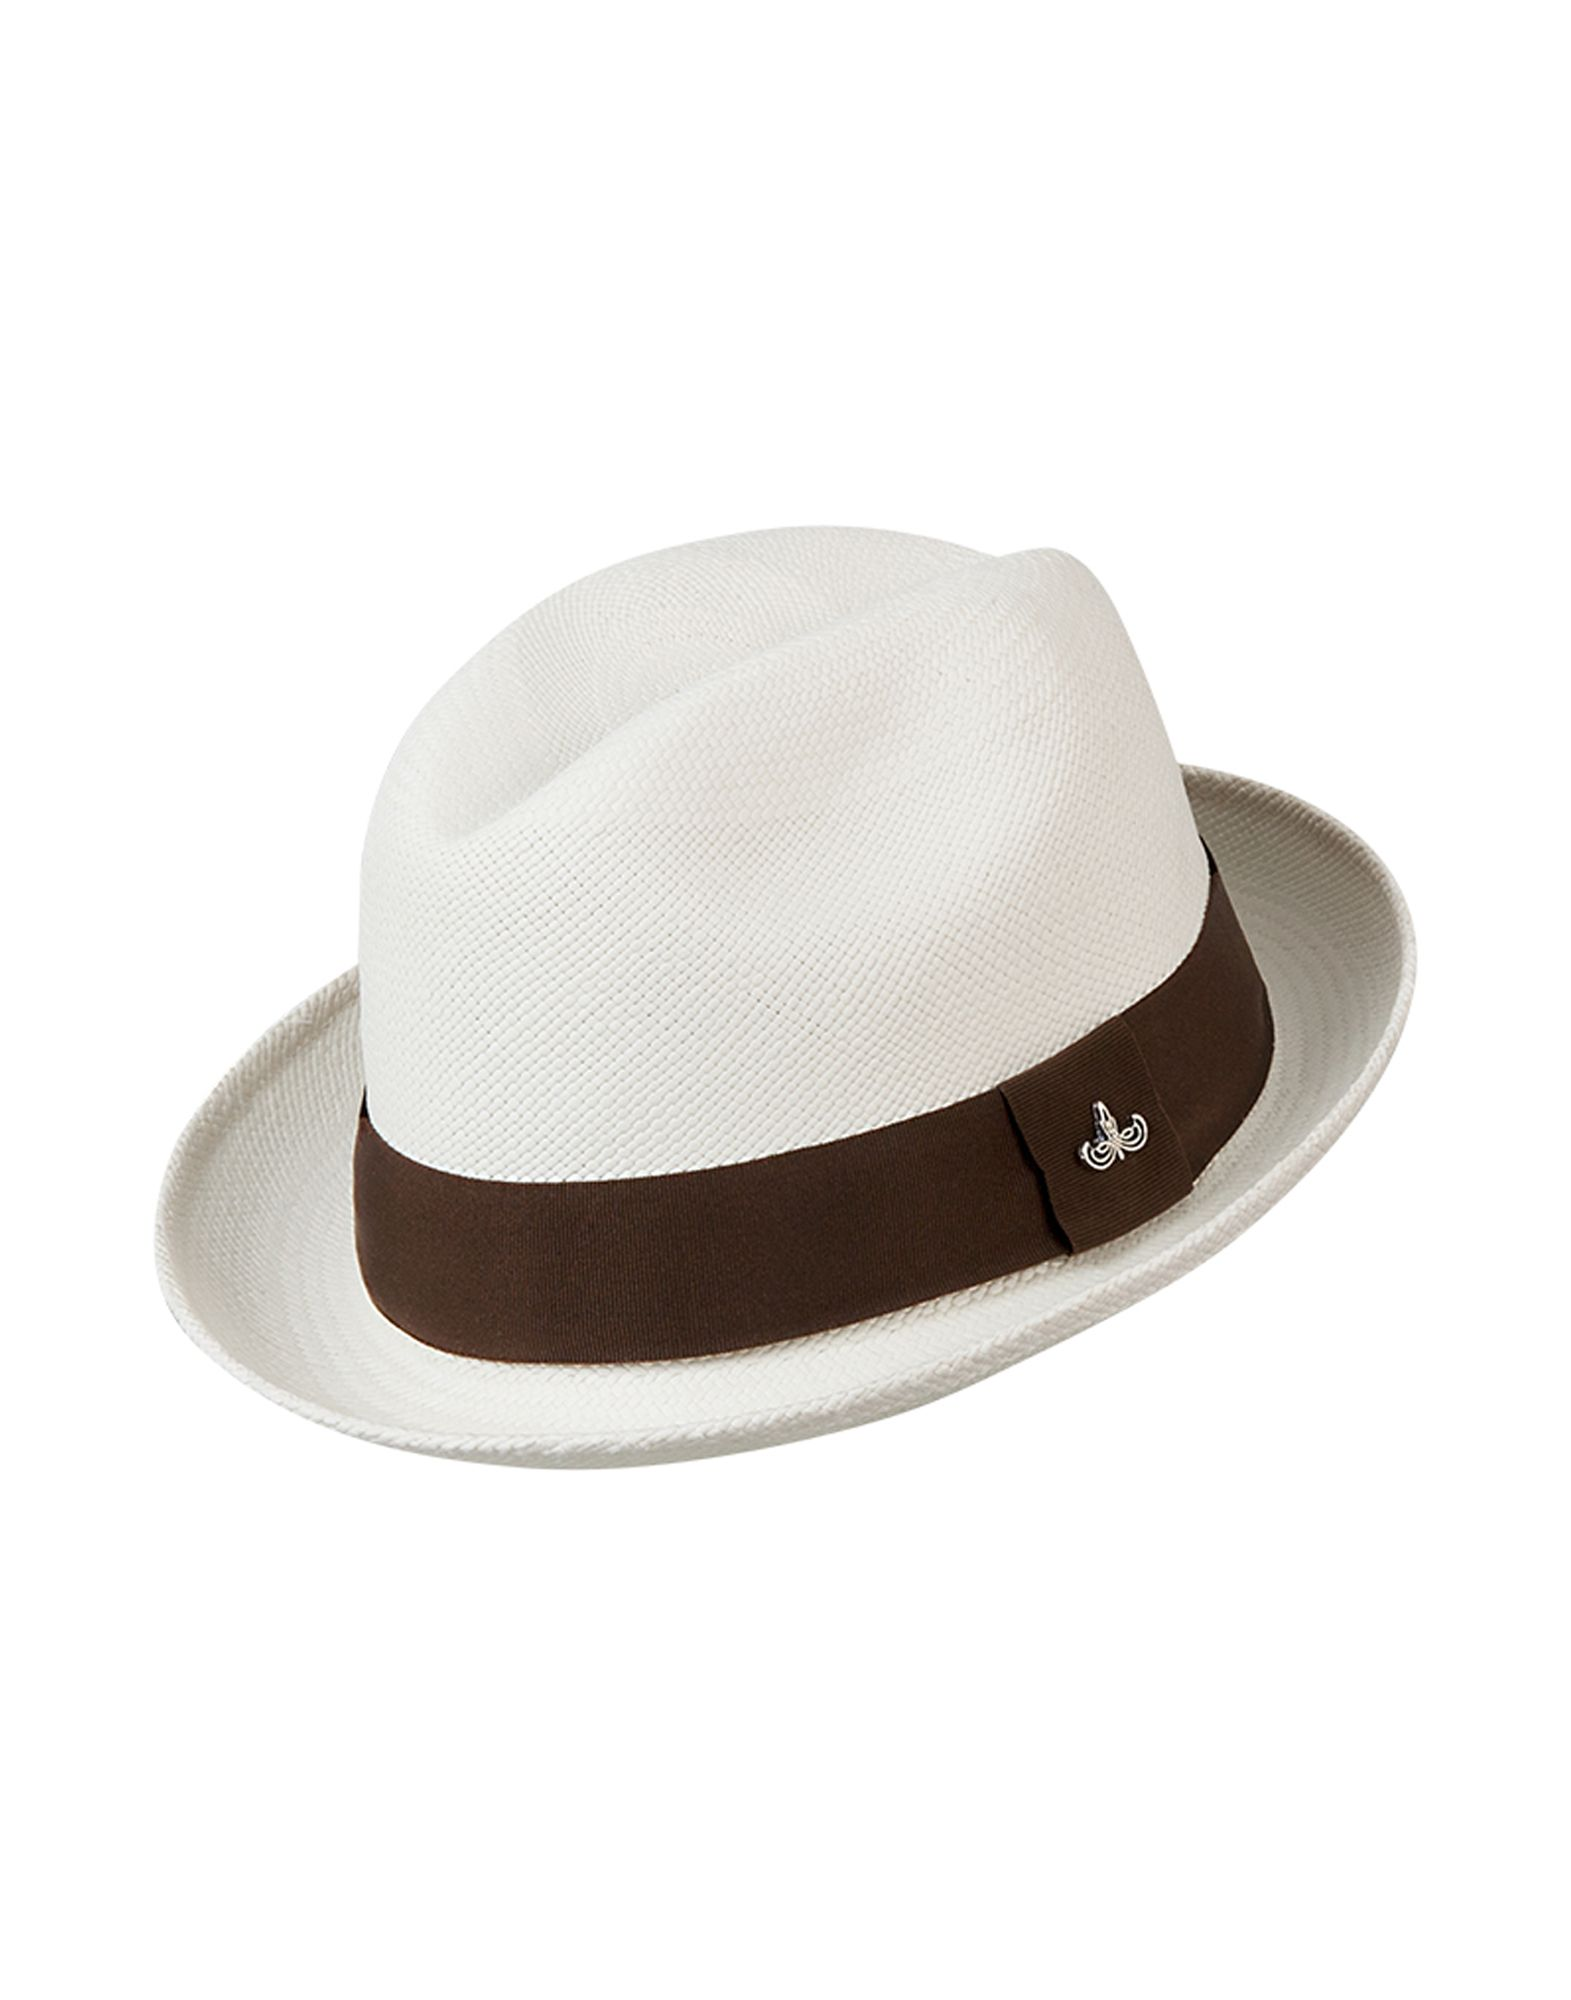 Cappello Panama Hatters New York - Uomo - Acquista online su